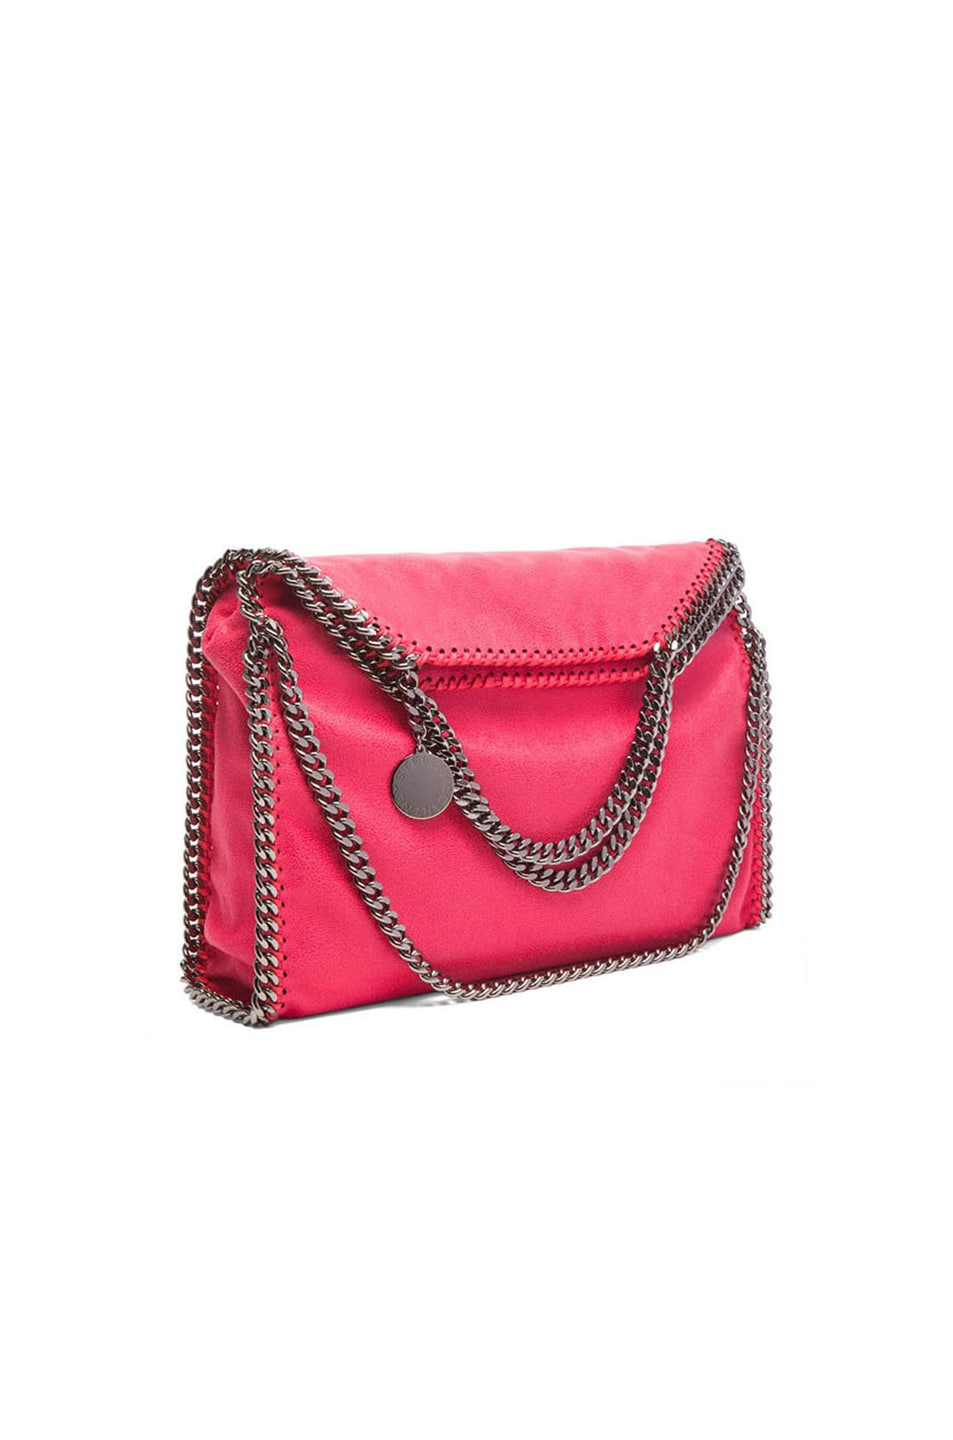 Image 1 of Stella McCartney Falabella Shaggy Deer Fold Over Tote in Pink Fluorescent